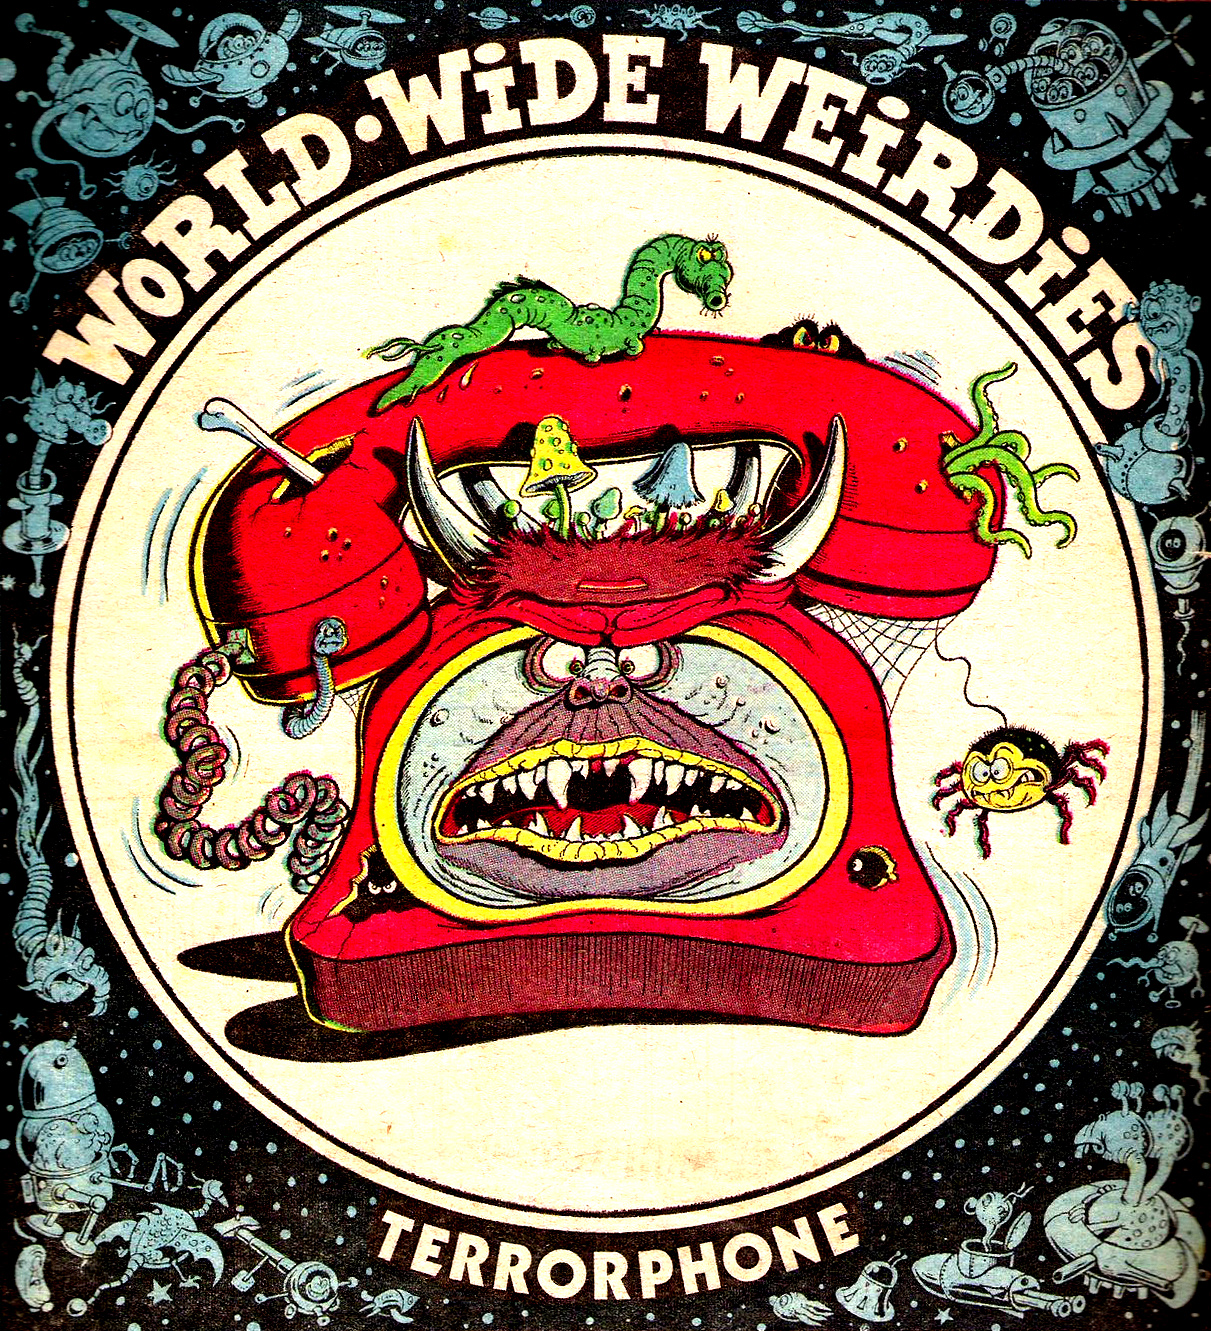 Ken Reid - World Wide Weirdies 81